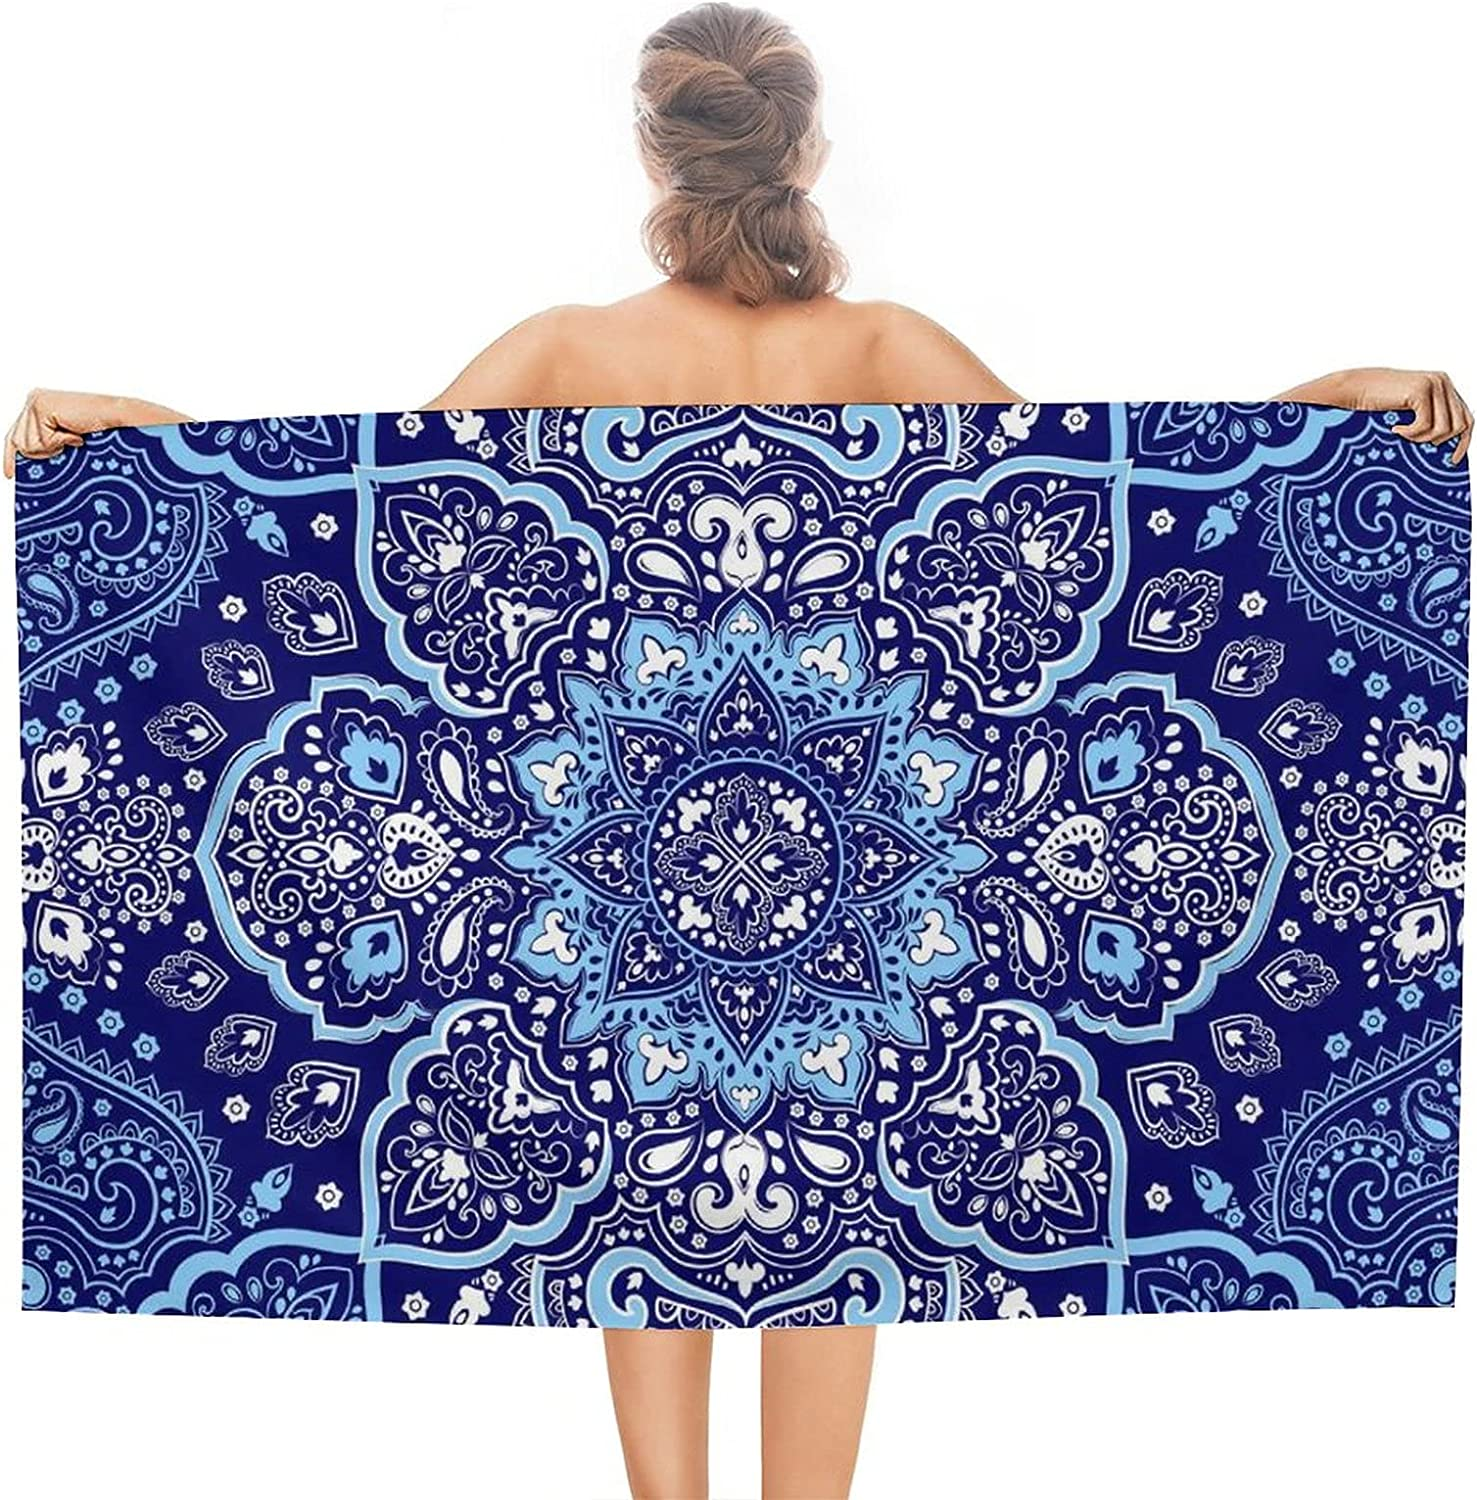 Boho Style Large Lightweight Beach Bat Towel Absorbent Quick Dry Max 61% safety OFF